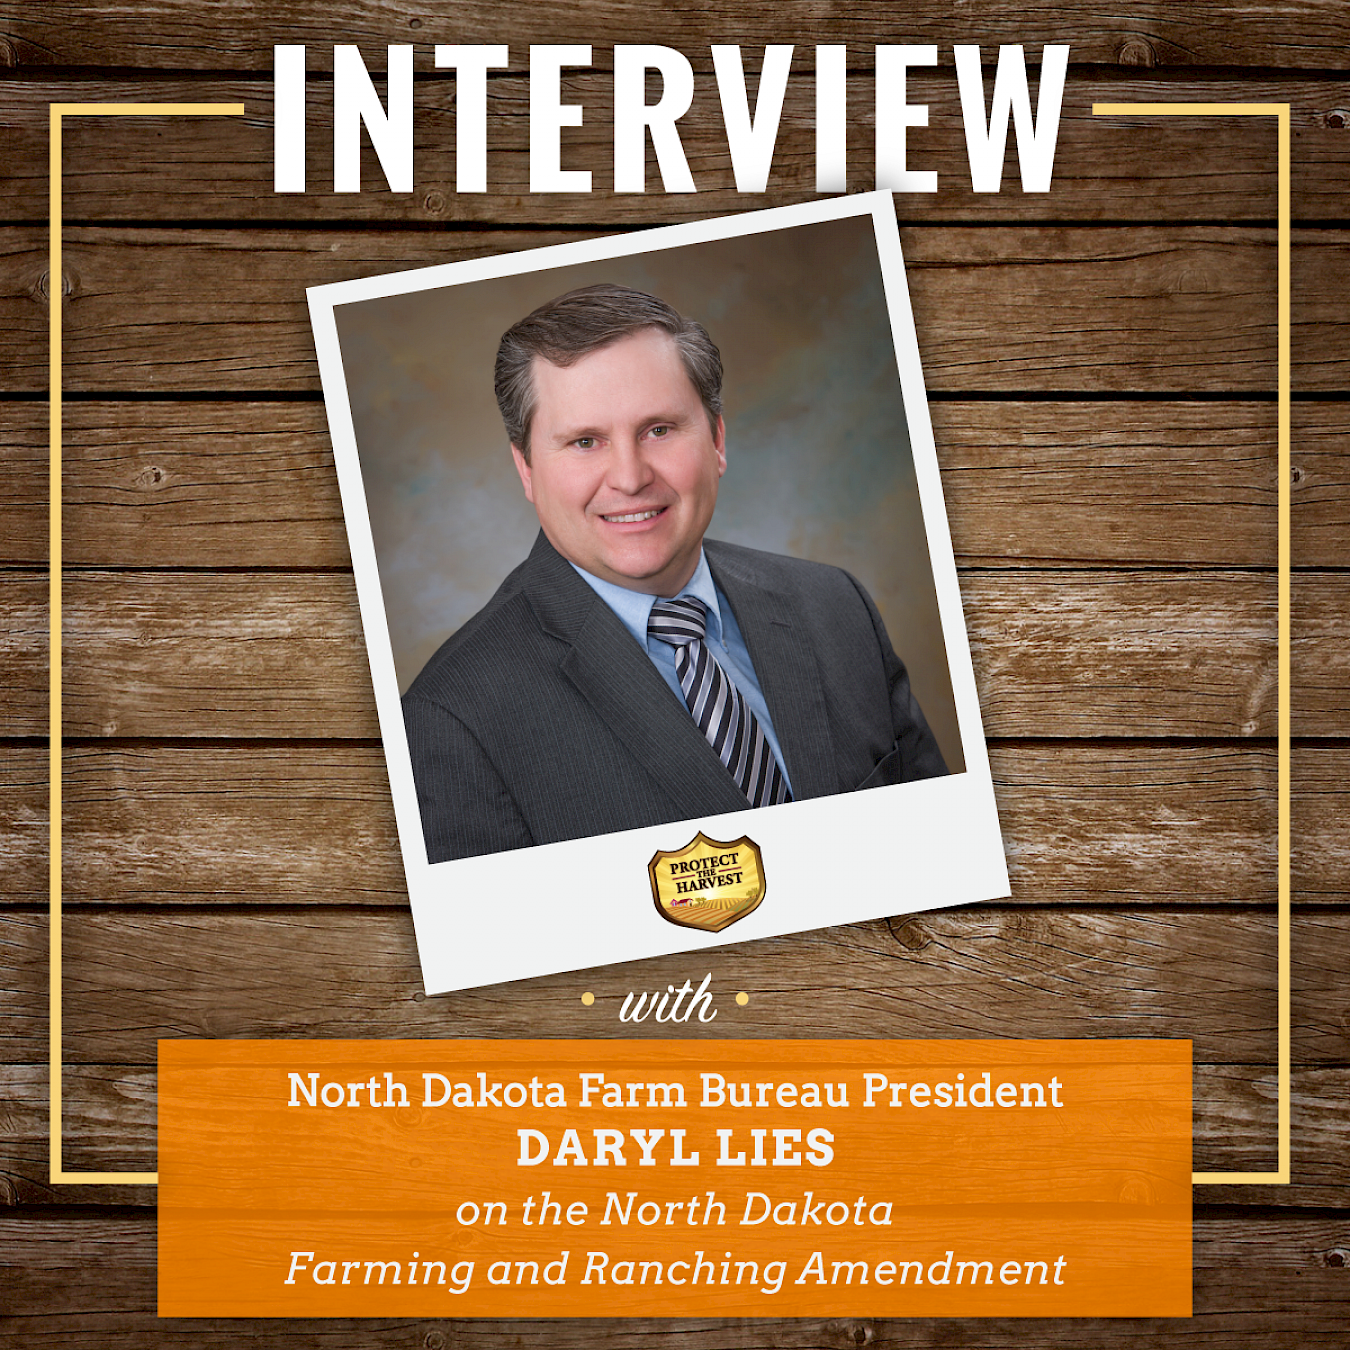 Interview with North Dakota Farm Bureau President Daryl Lies on the State's Right to Farm Amendment